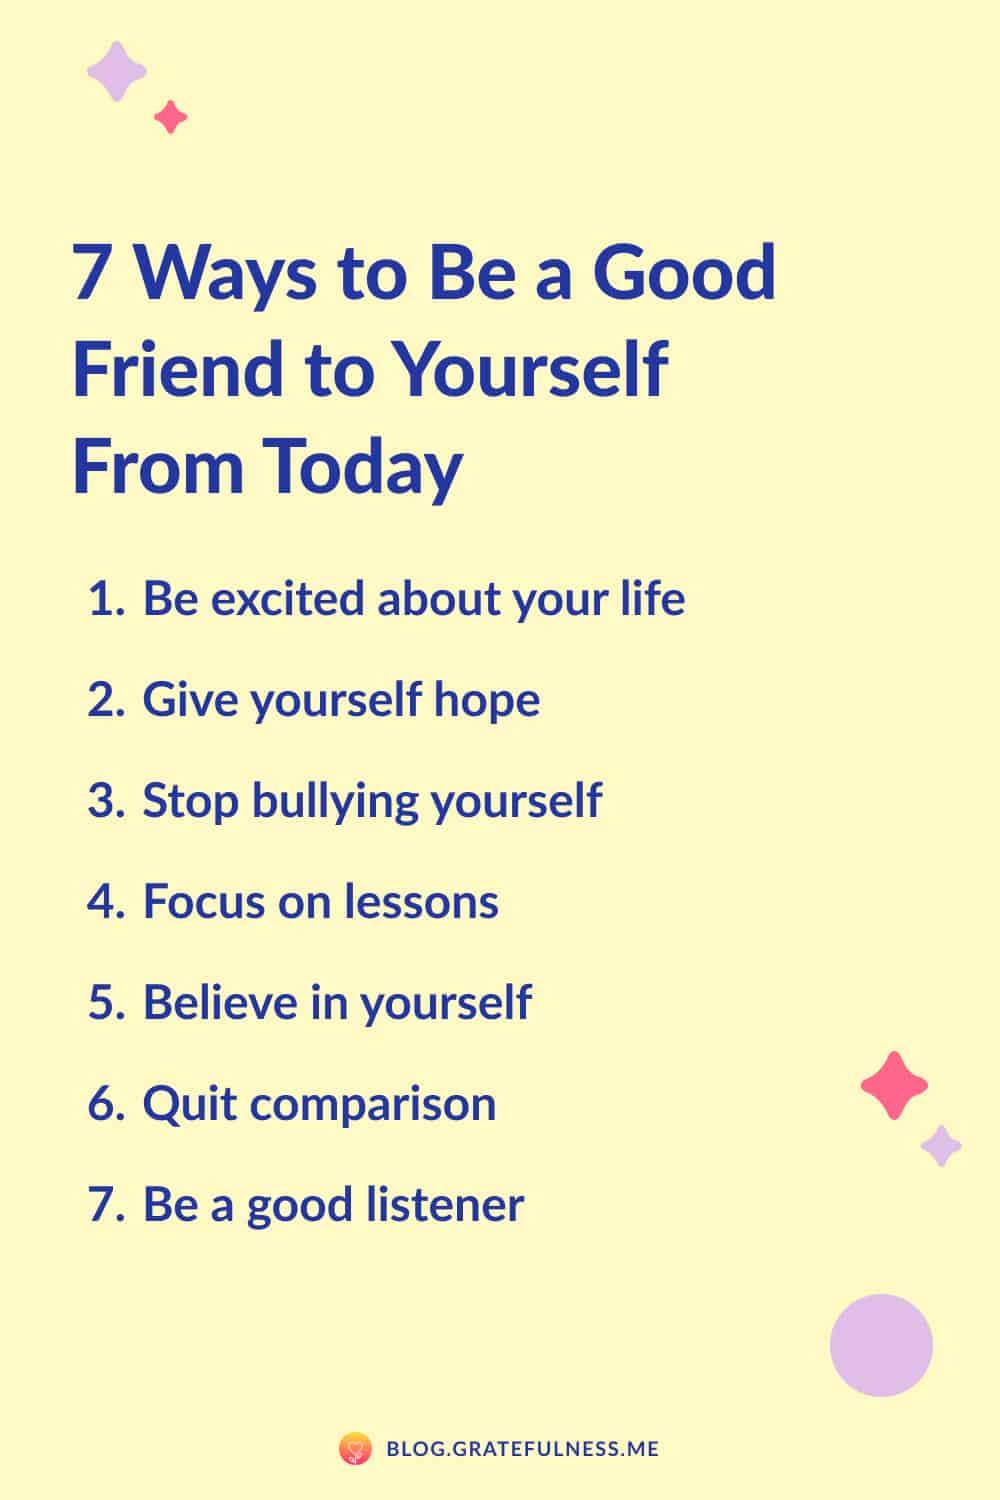 Image with list of 7 ways to be a good friend to yourself from today